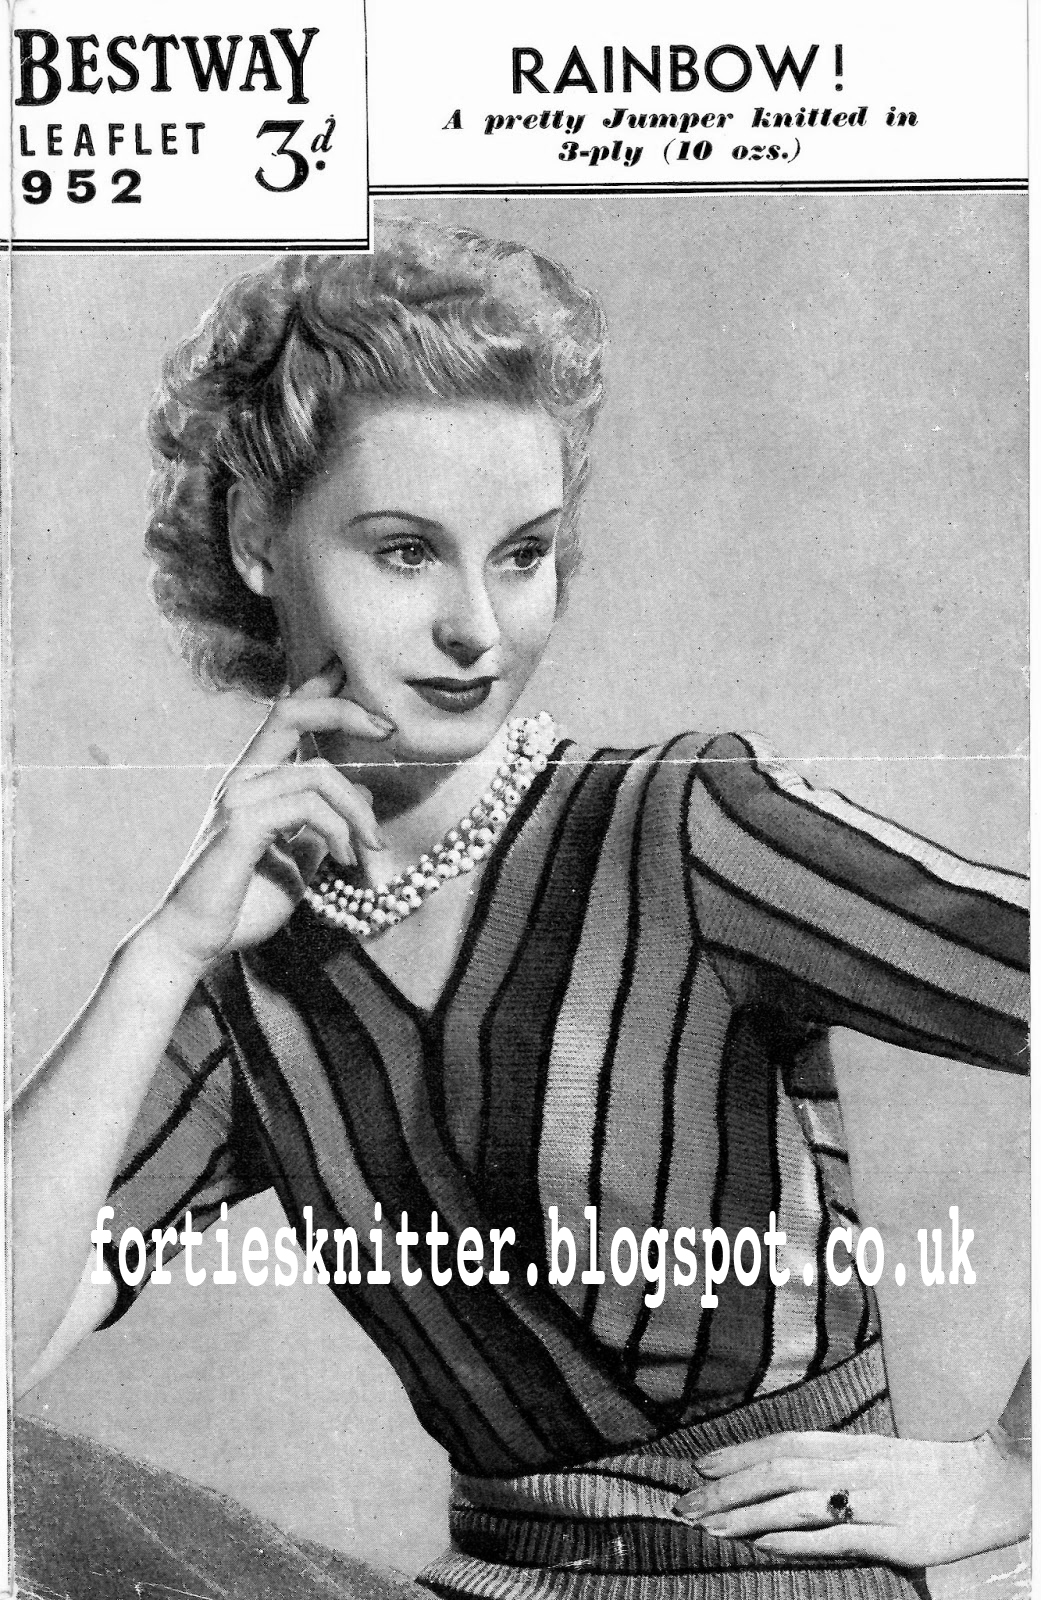 1940's Knitting - Bestway No.952 Rainbow Jumper free pattern